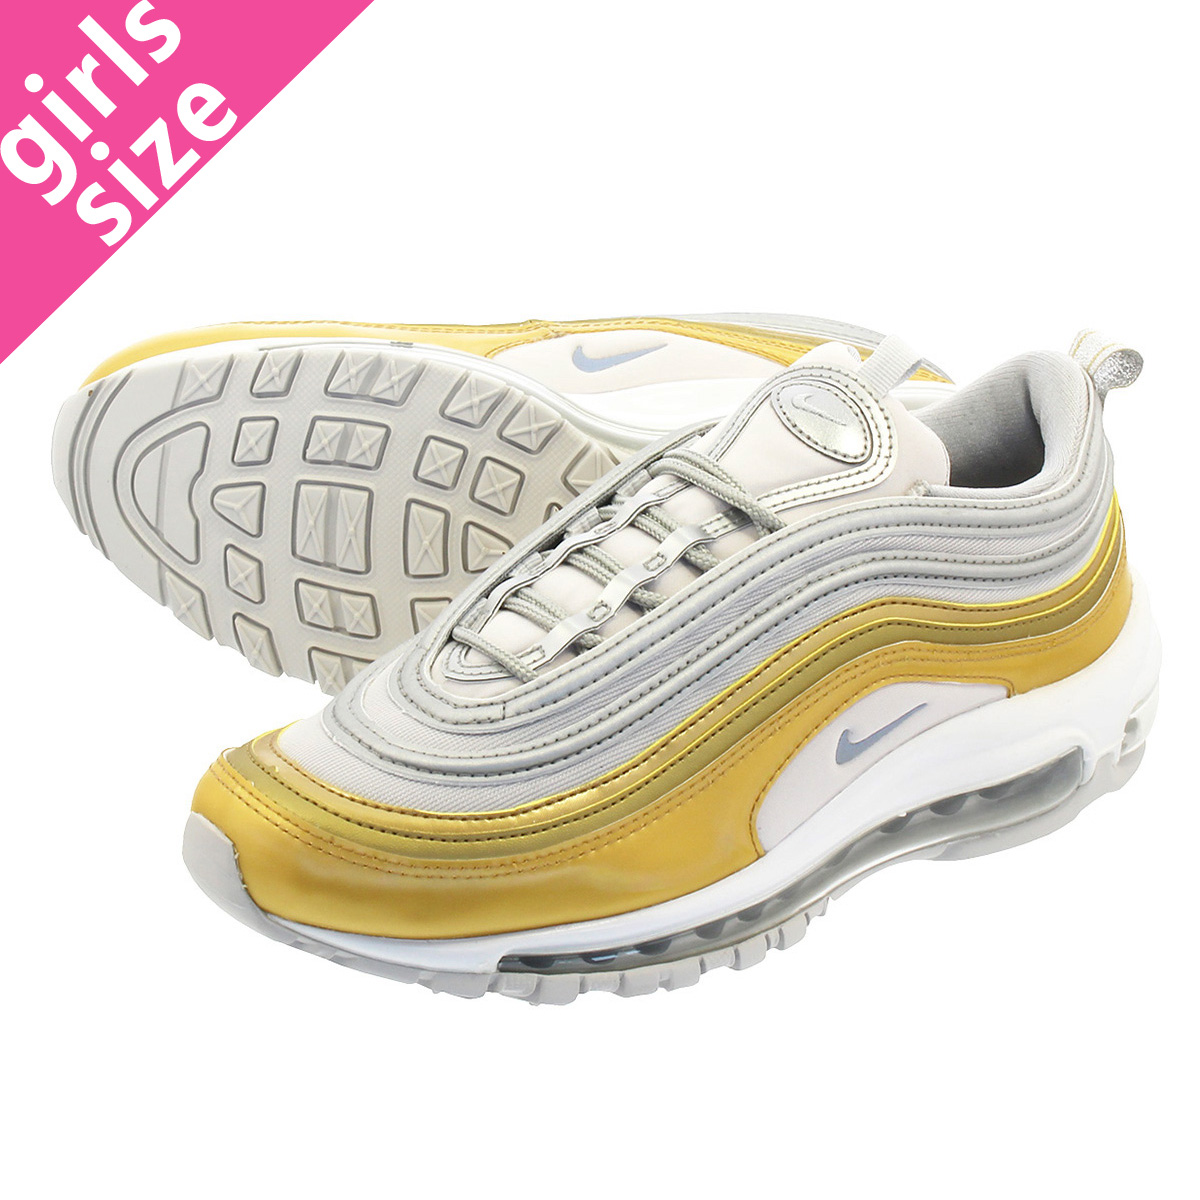 5b2d7262f9934 NIKE WMNS AIR MAX 97 SE Nike women Air Max 97 SE VAST GREY/METALLIC ...